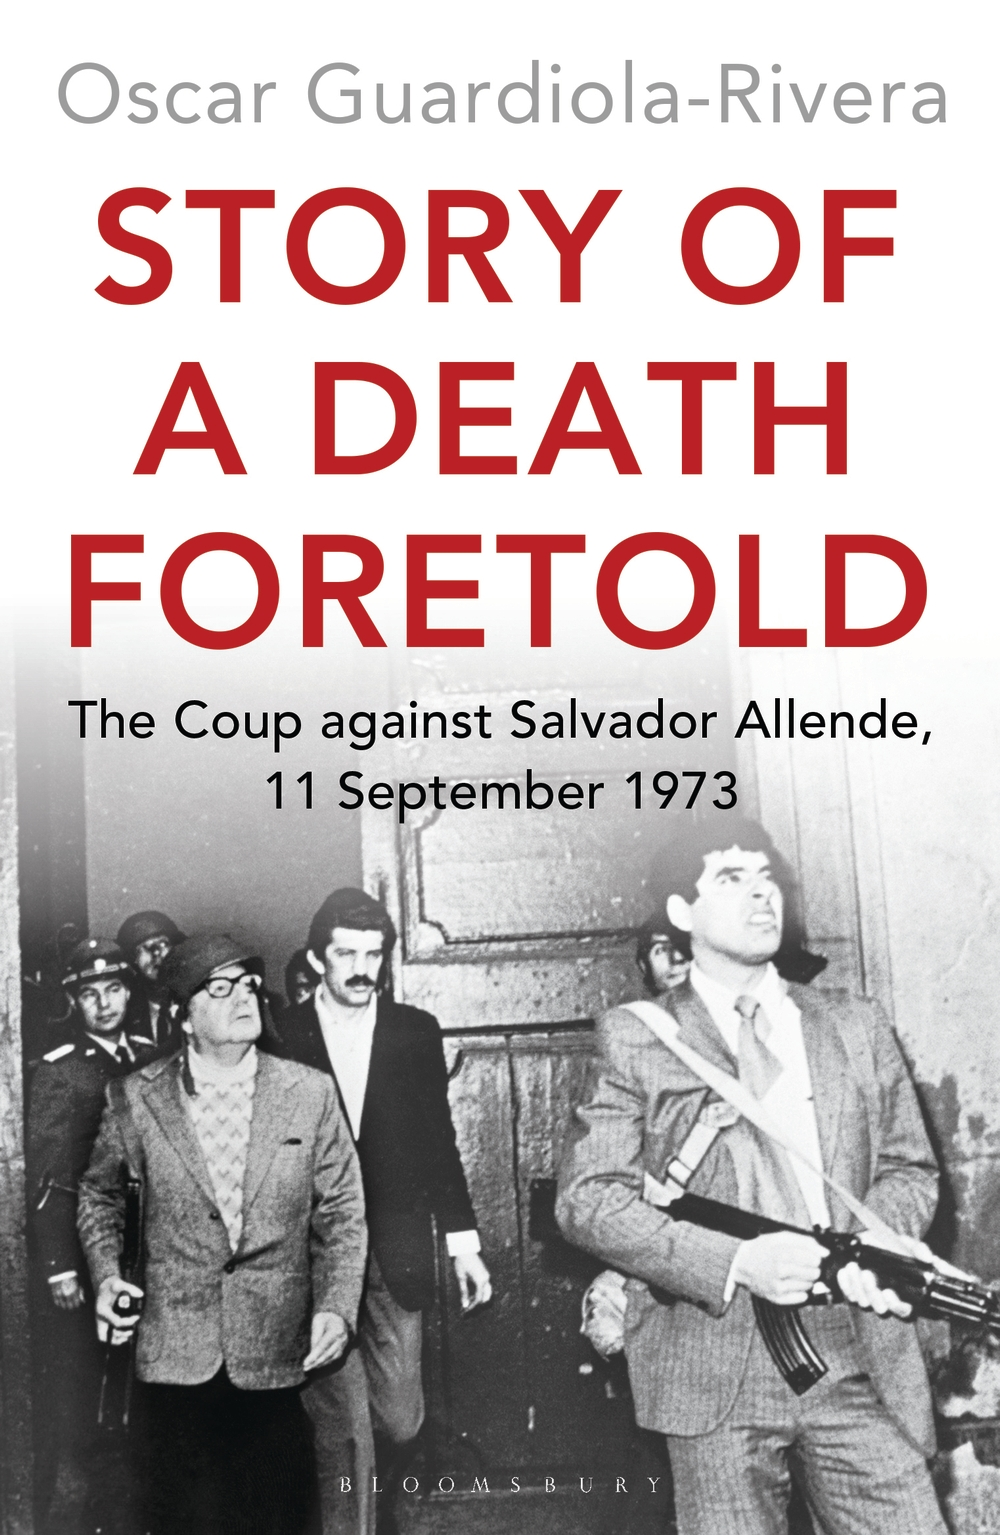 an account of deaths foretold Gabriel garcia marquez's novel, chronicle of a death foretold, is a hybrid of  literary genres, at once a journalistic account of a historical murder.